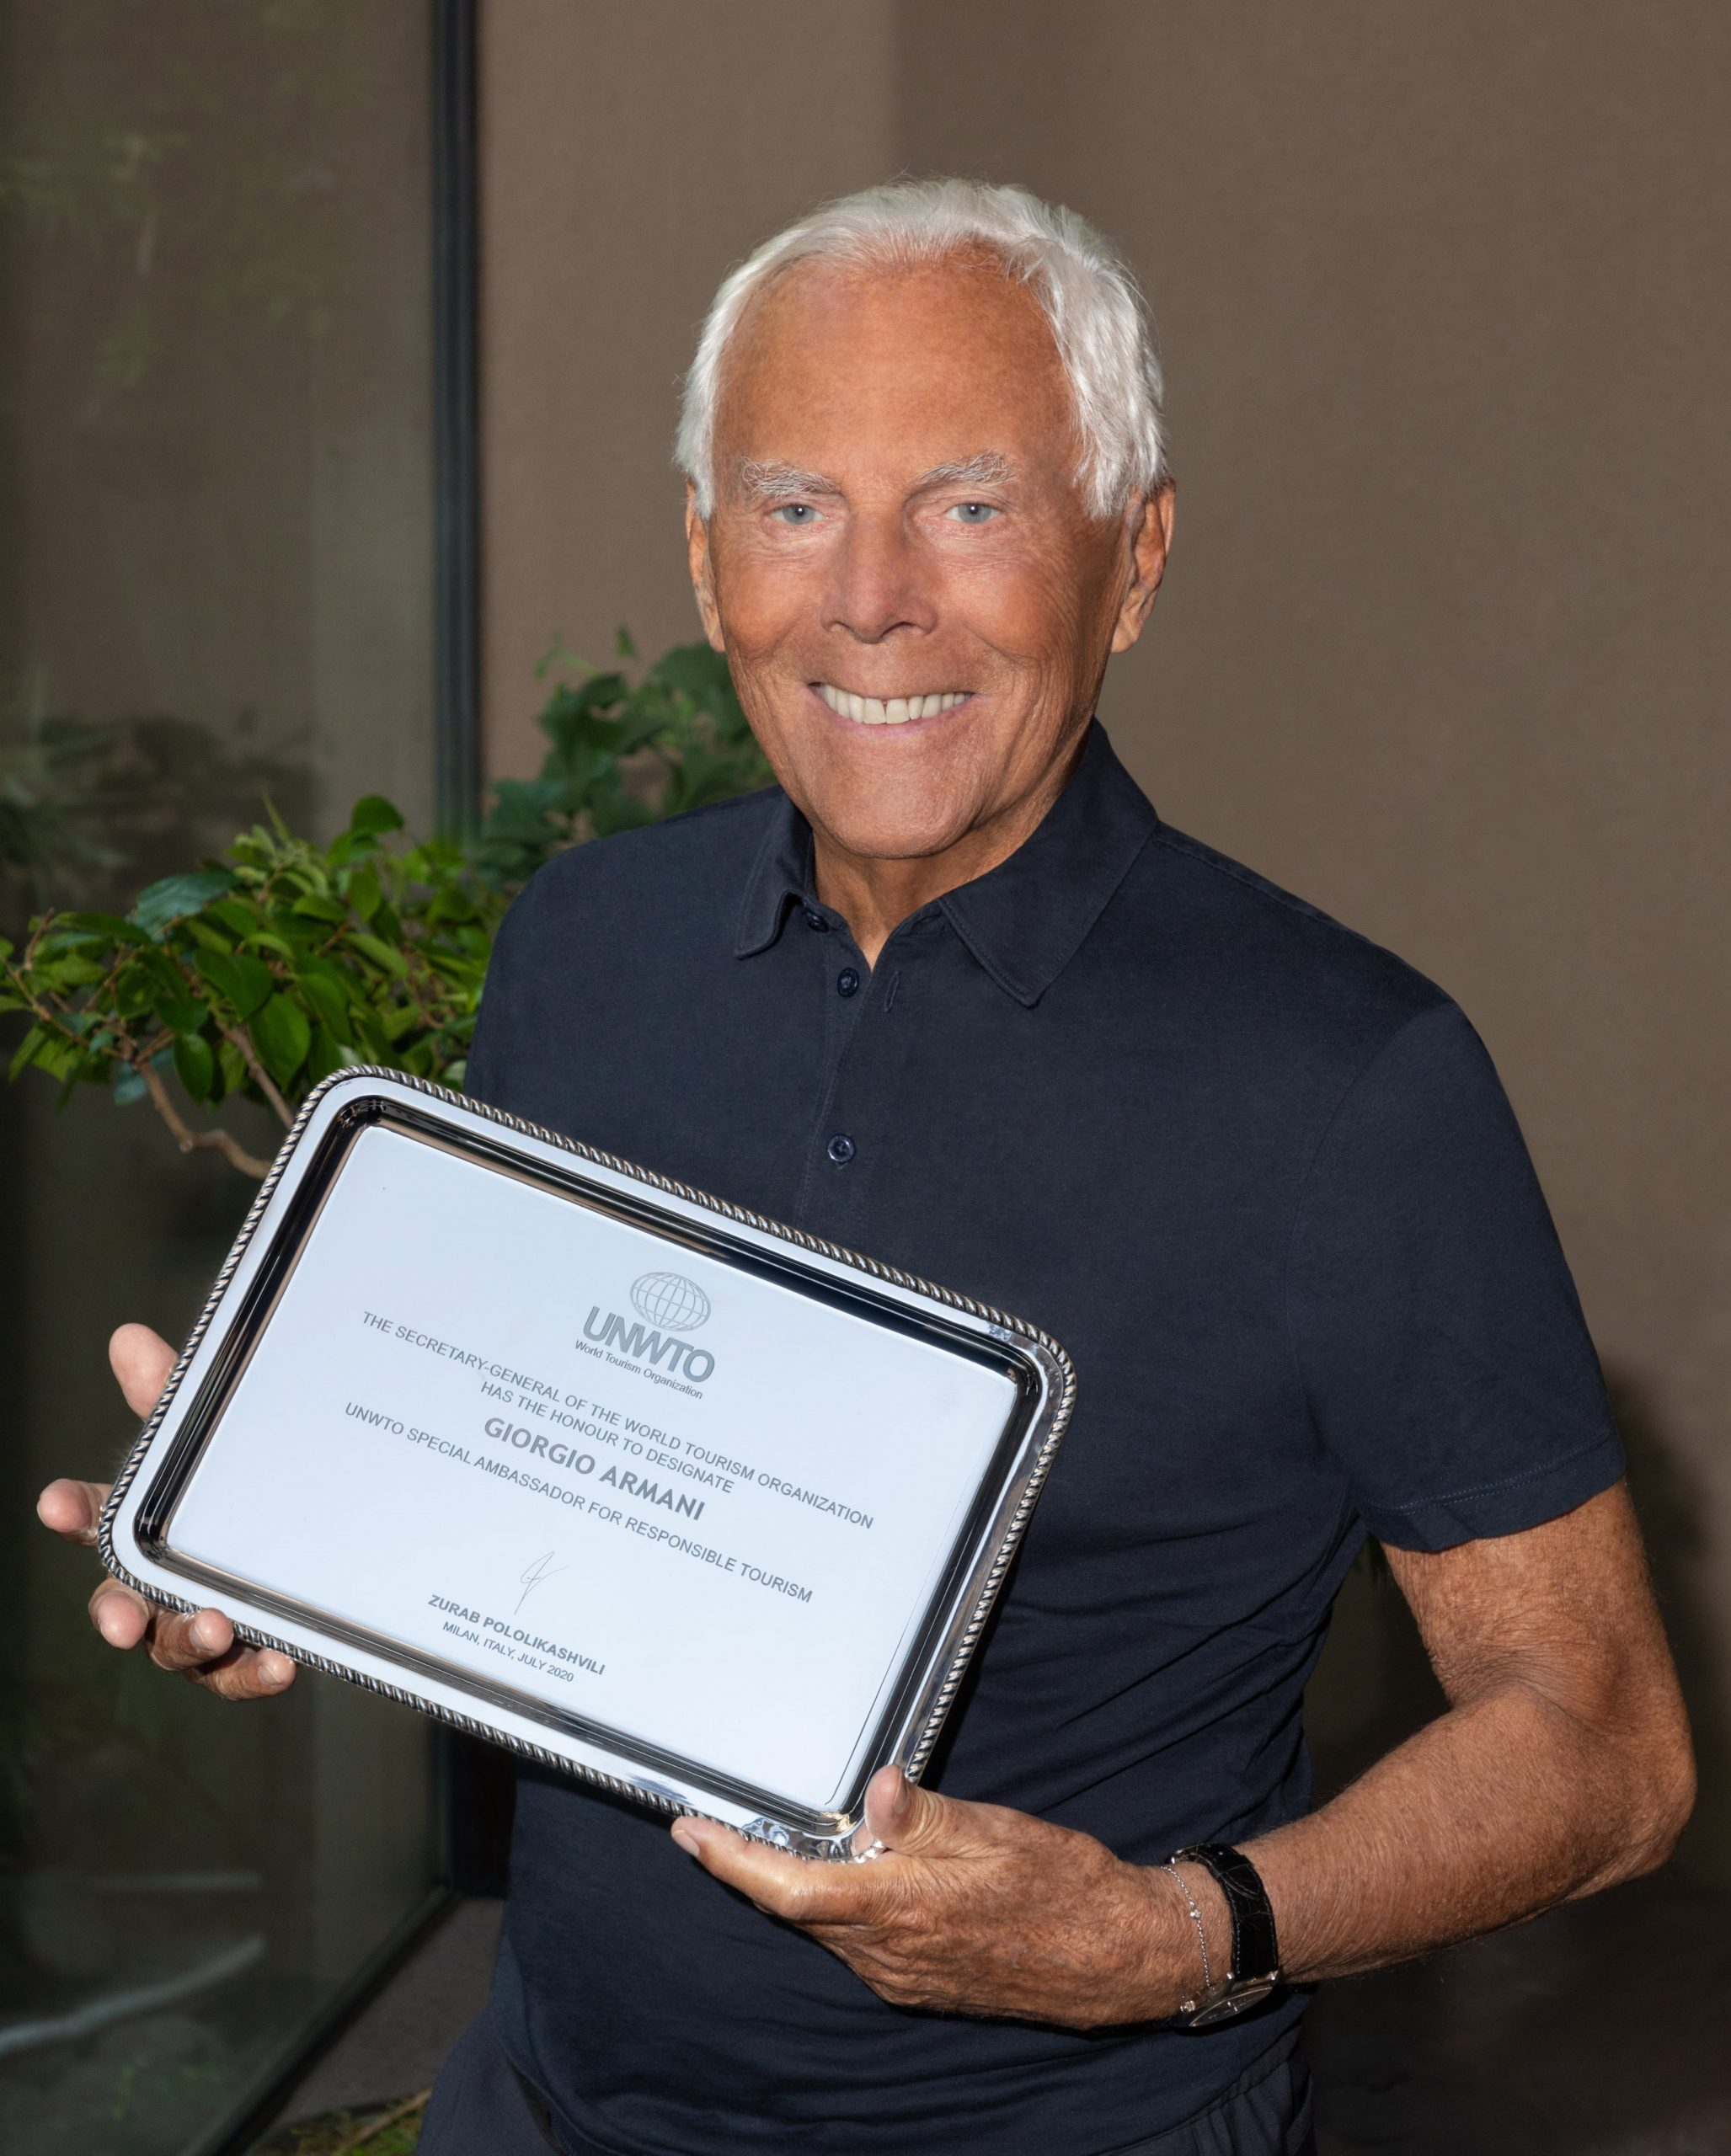 UNWTO names Giorgio Armani and Gino Sorbillo as Special Tourism Ambassadors